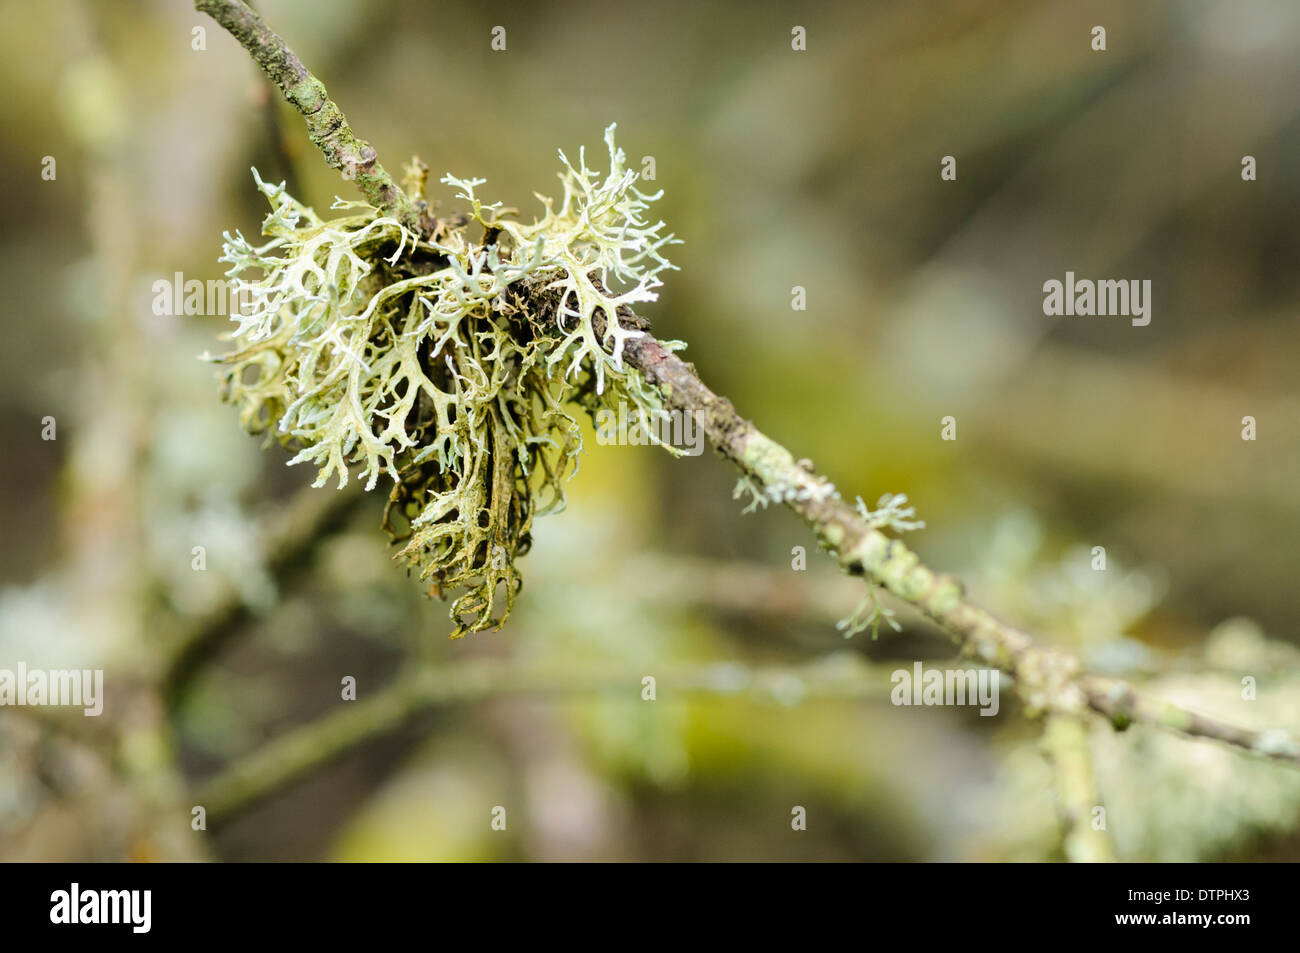 Lichen growing on a branch - Stock Image